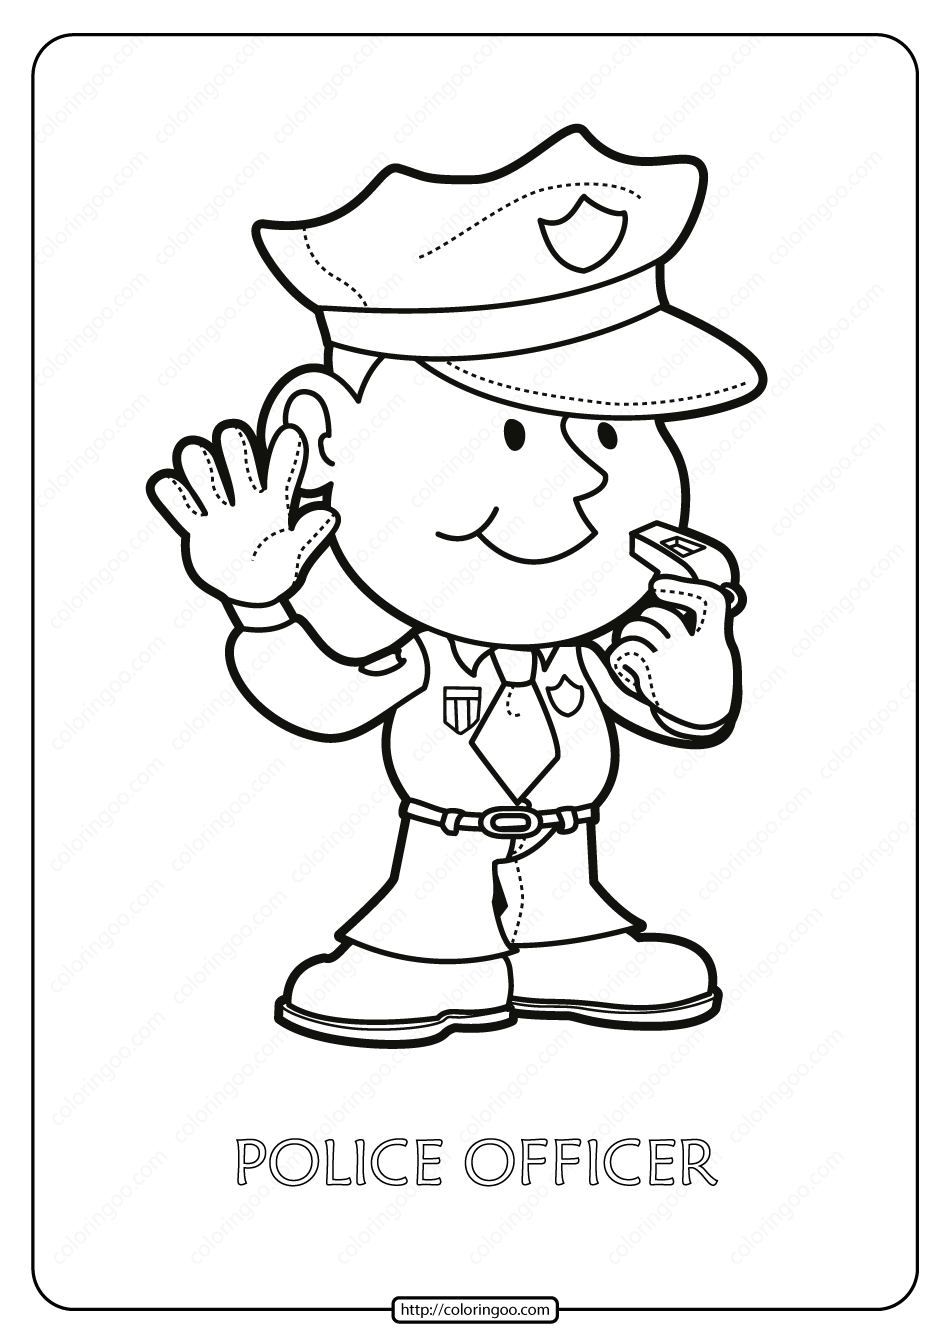 Printable Police Officer Pdf Coloring Page Coloring Pages Police Officer Color